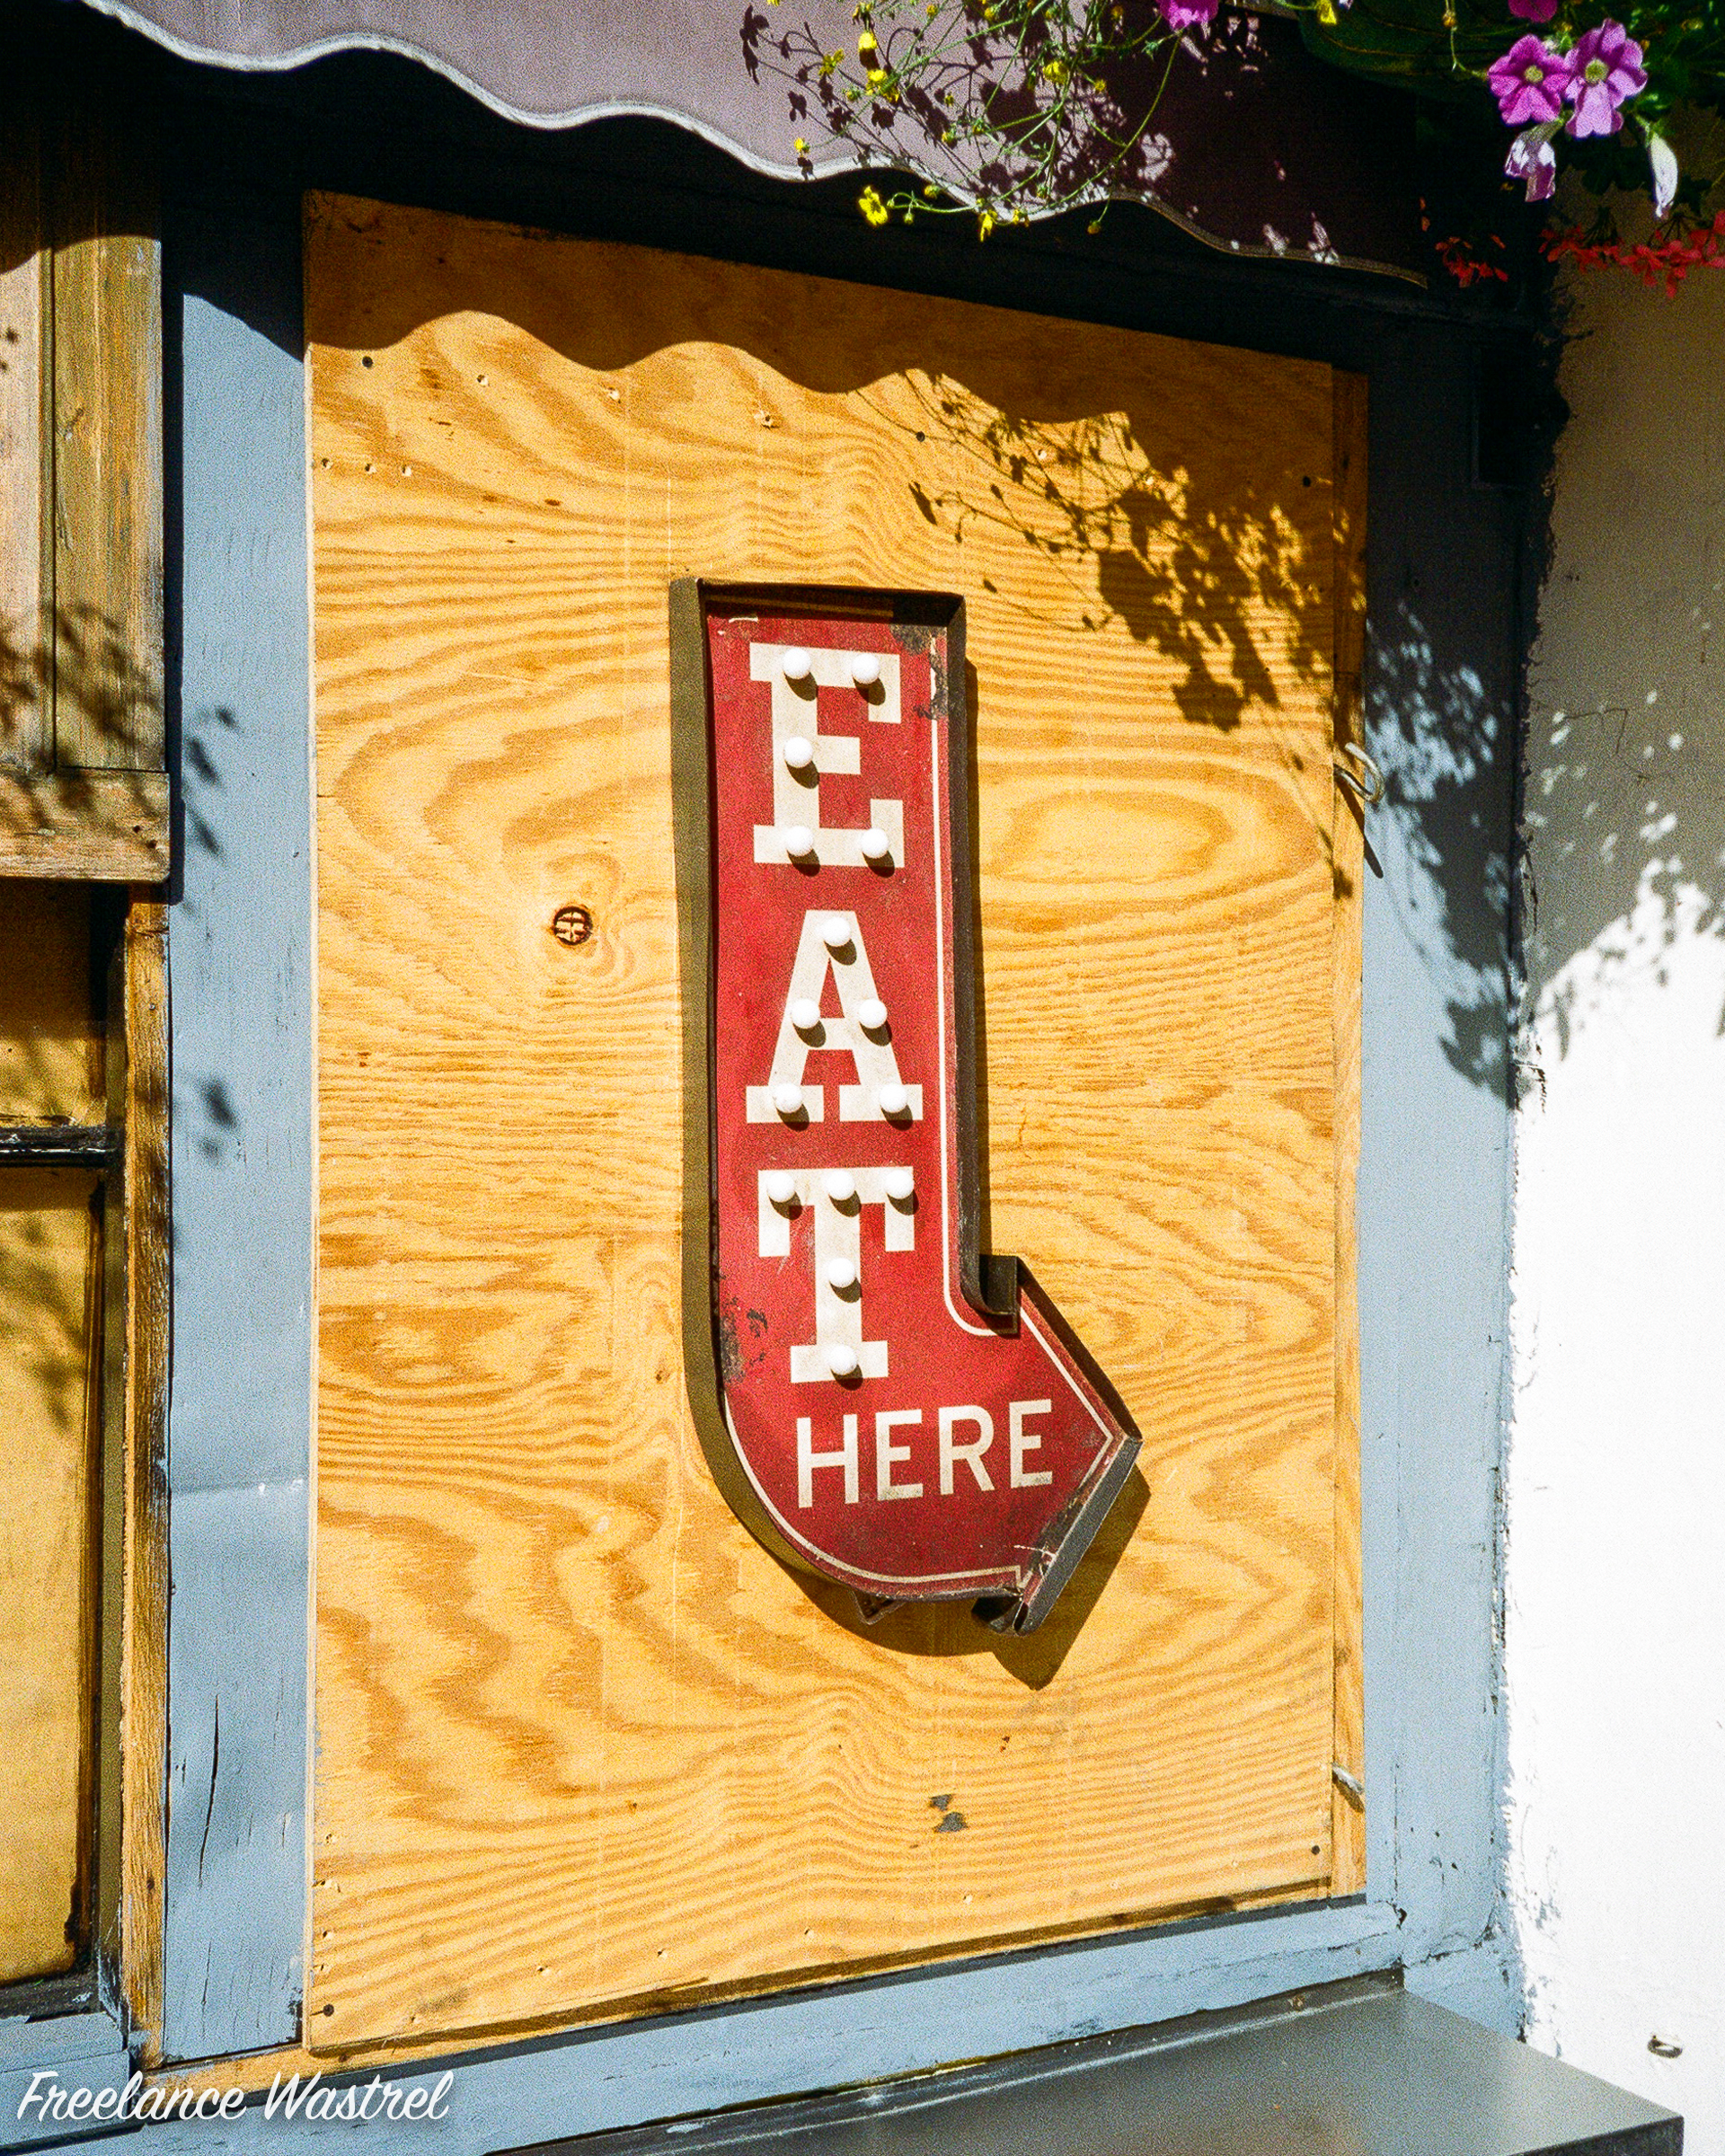 Eat Here, Brighton, July 2018